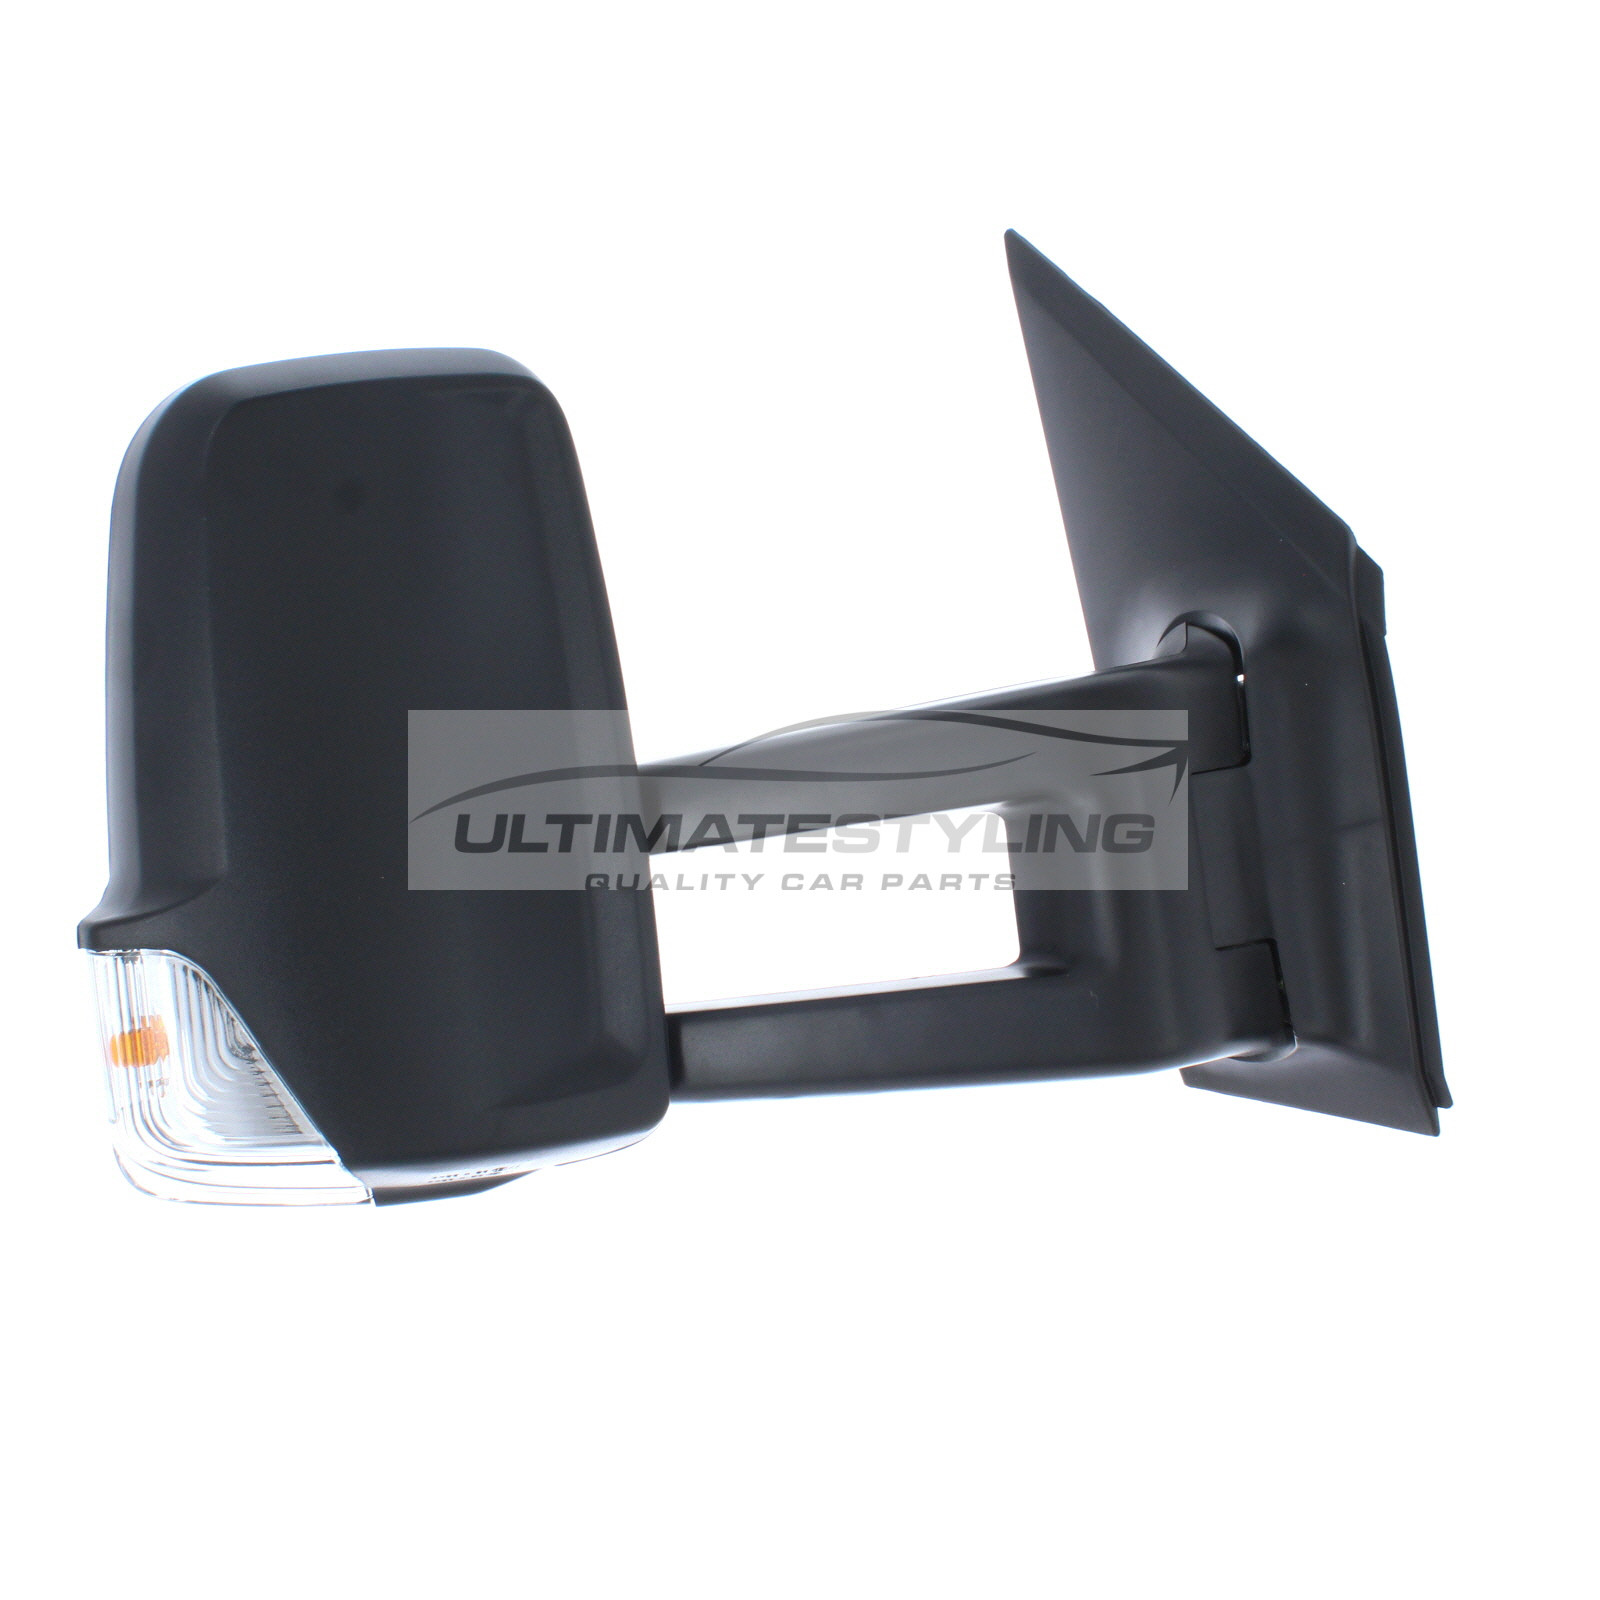 RIGHT SIDE DOOR MIRROR FOR MERCEDES BENZ SPRINTER 2006-2013 MANUAL ADJUSTMENT